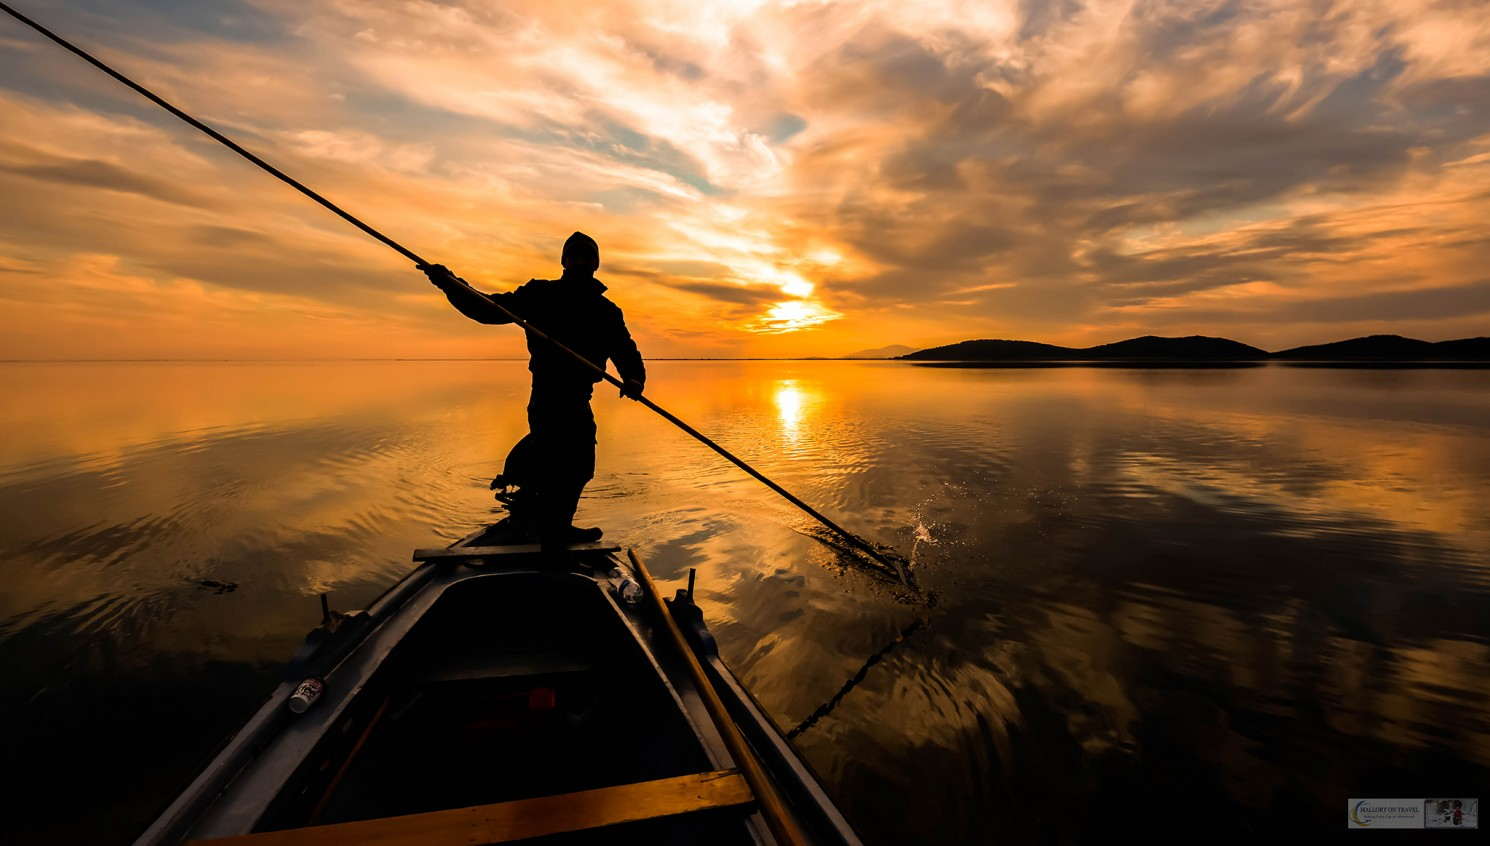 Stunning sunset and silhouetted boat fisherman on Messolonghi lagoons in western Greece on Mallory on Travel adventure travel, photography, travel Iain Mallory Messolonghi_8384-163